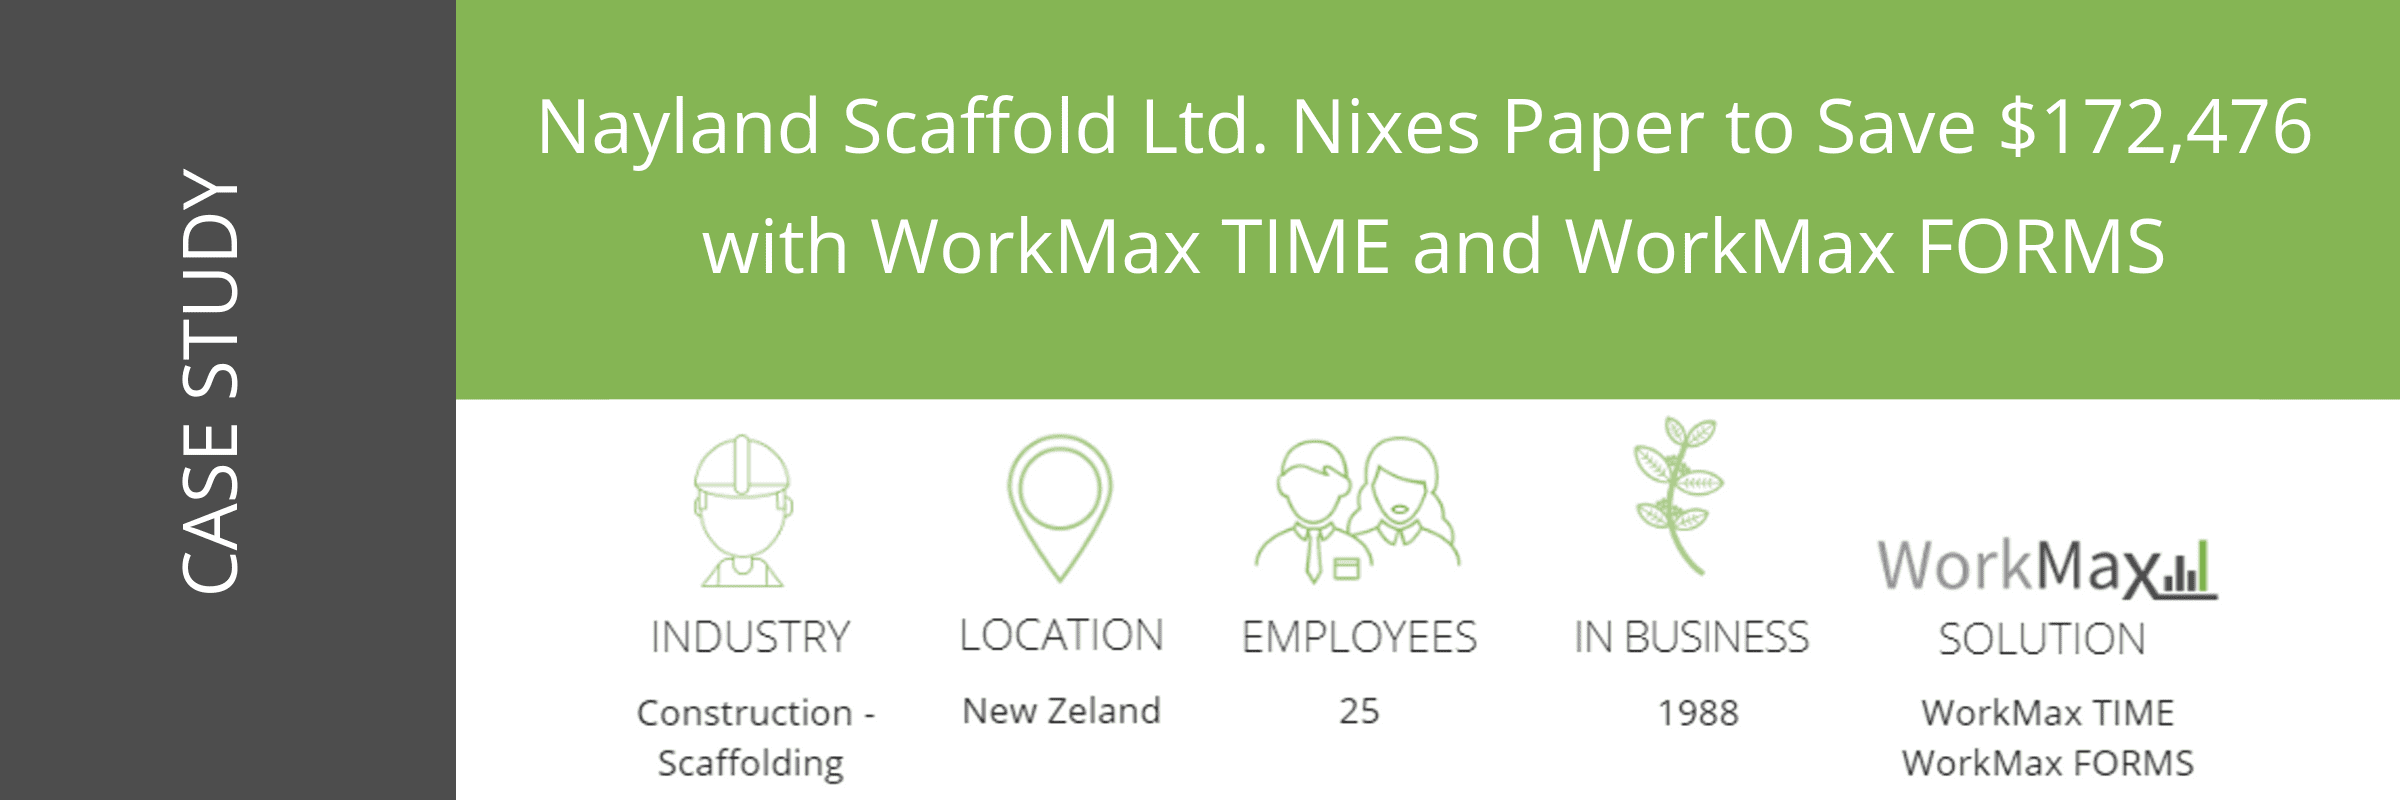 WorkMax TIME and WorkMax FORMS Nayland Scaffolding Case Study At A Glance